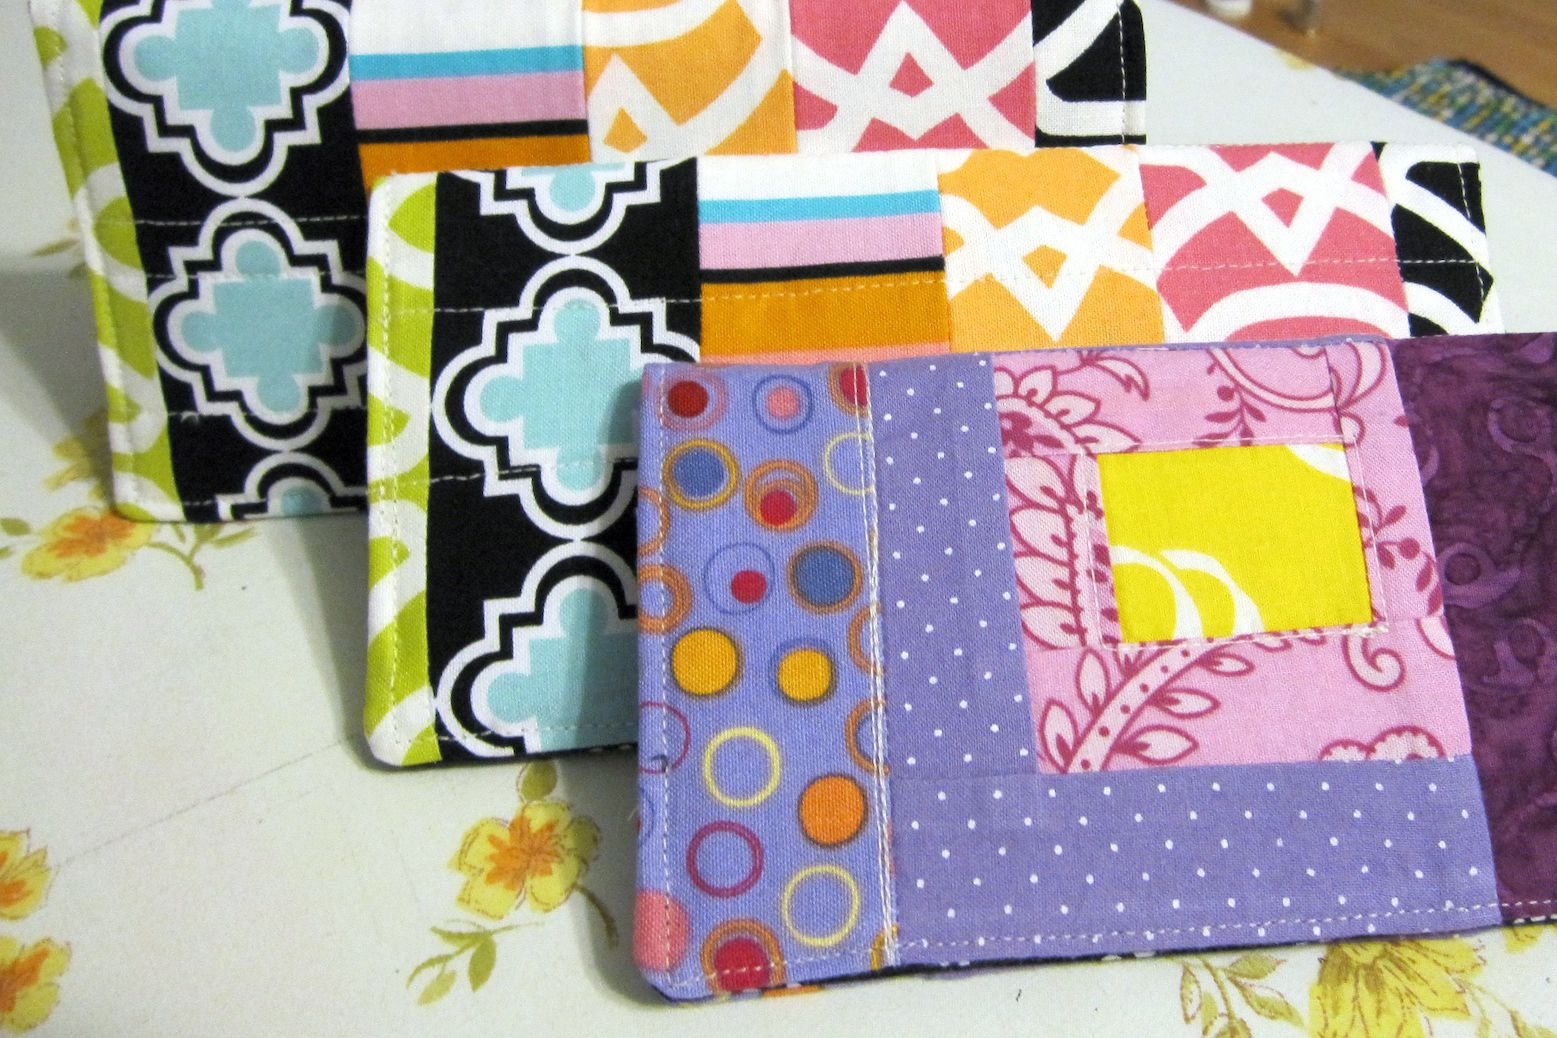 Fabric Cheque Book Cover ~ Fabric checkbook cover free sewing pattern